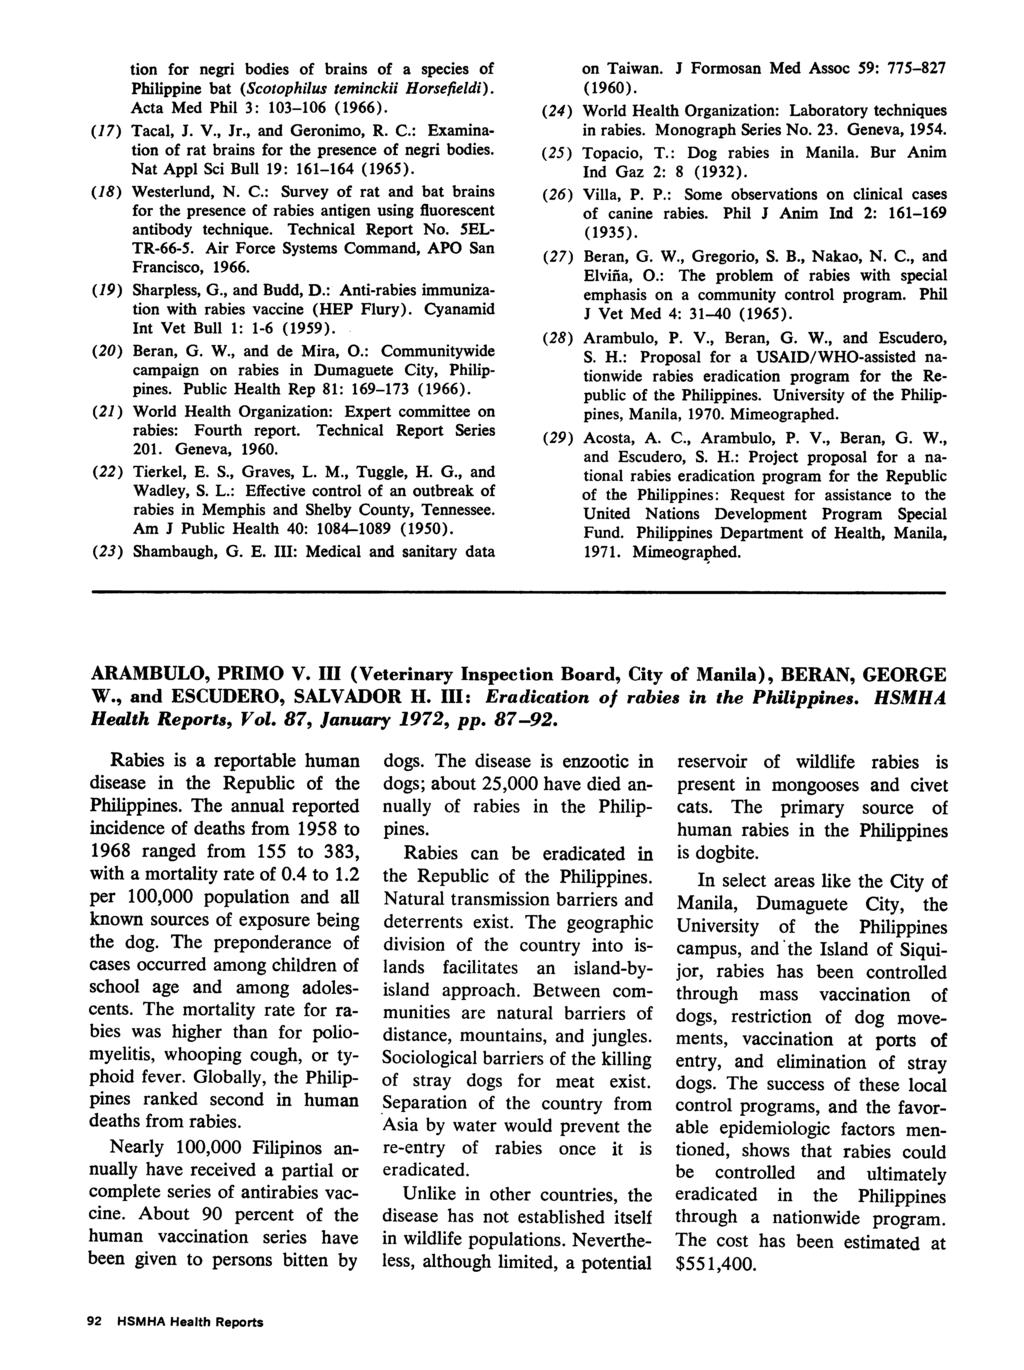 tion for negri bodies of brains of a species of Philippine bat (Scotophilus teminckii Horsefieldi). Acta Med Phil 3: 103-106 (1966). (17) Tacal, J. V., Jr., and Geronimo, R. C.